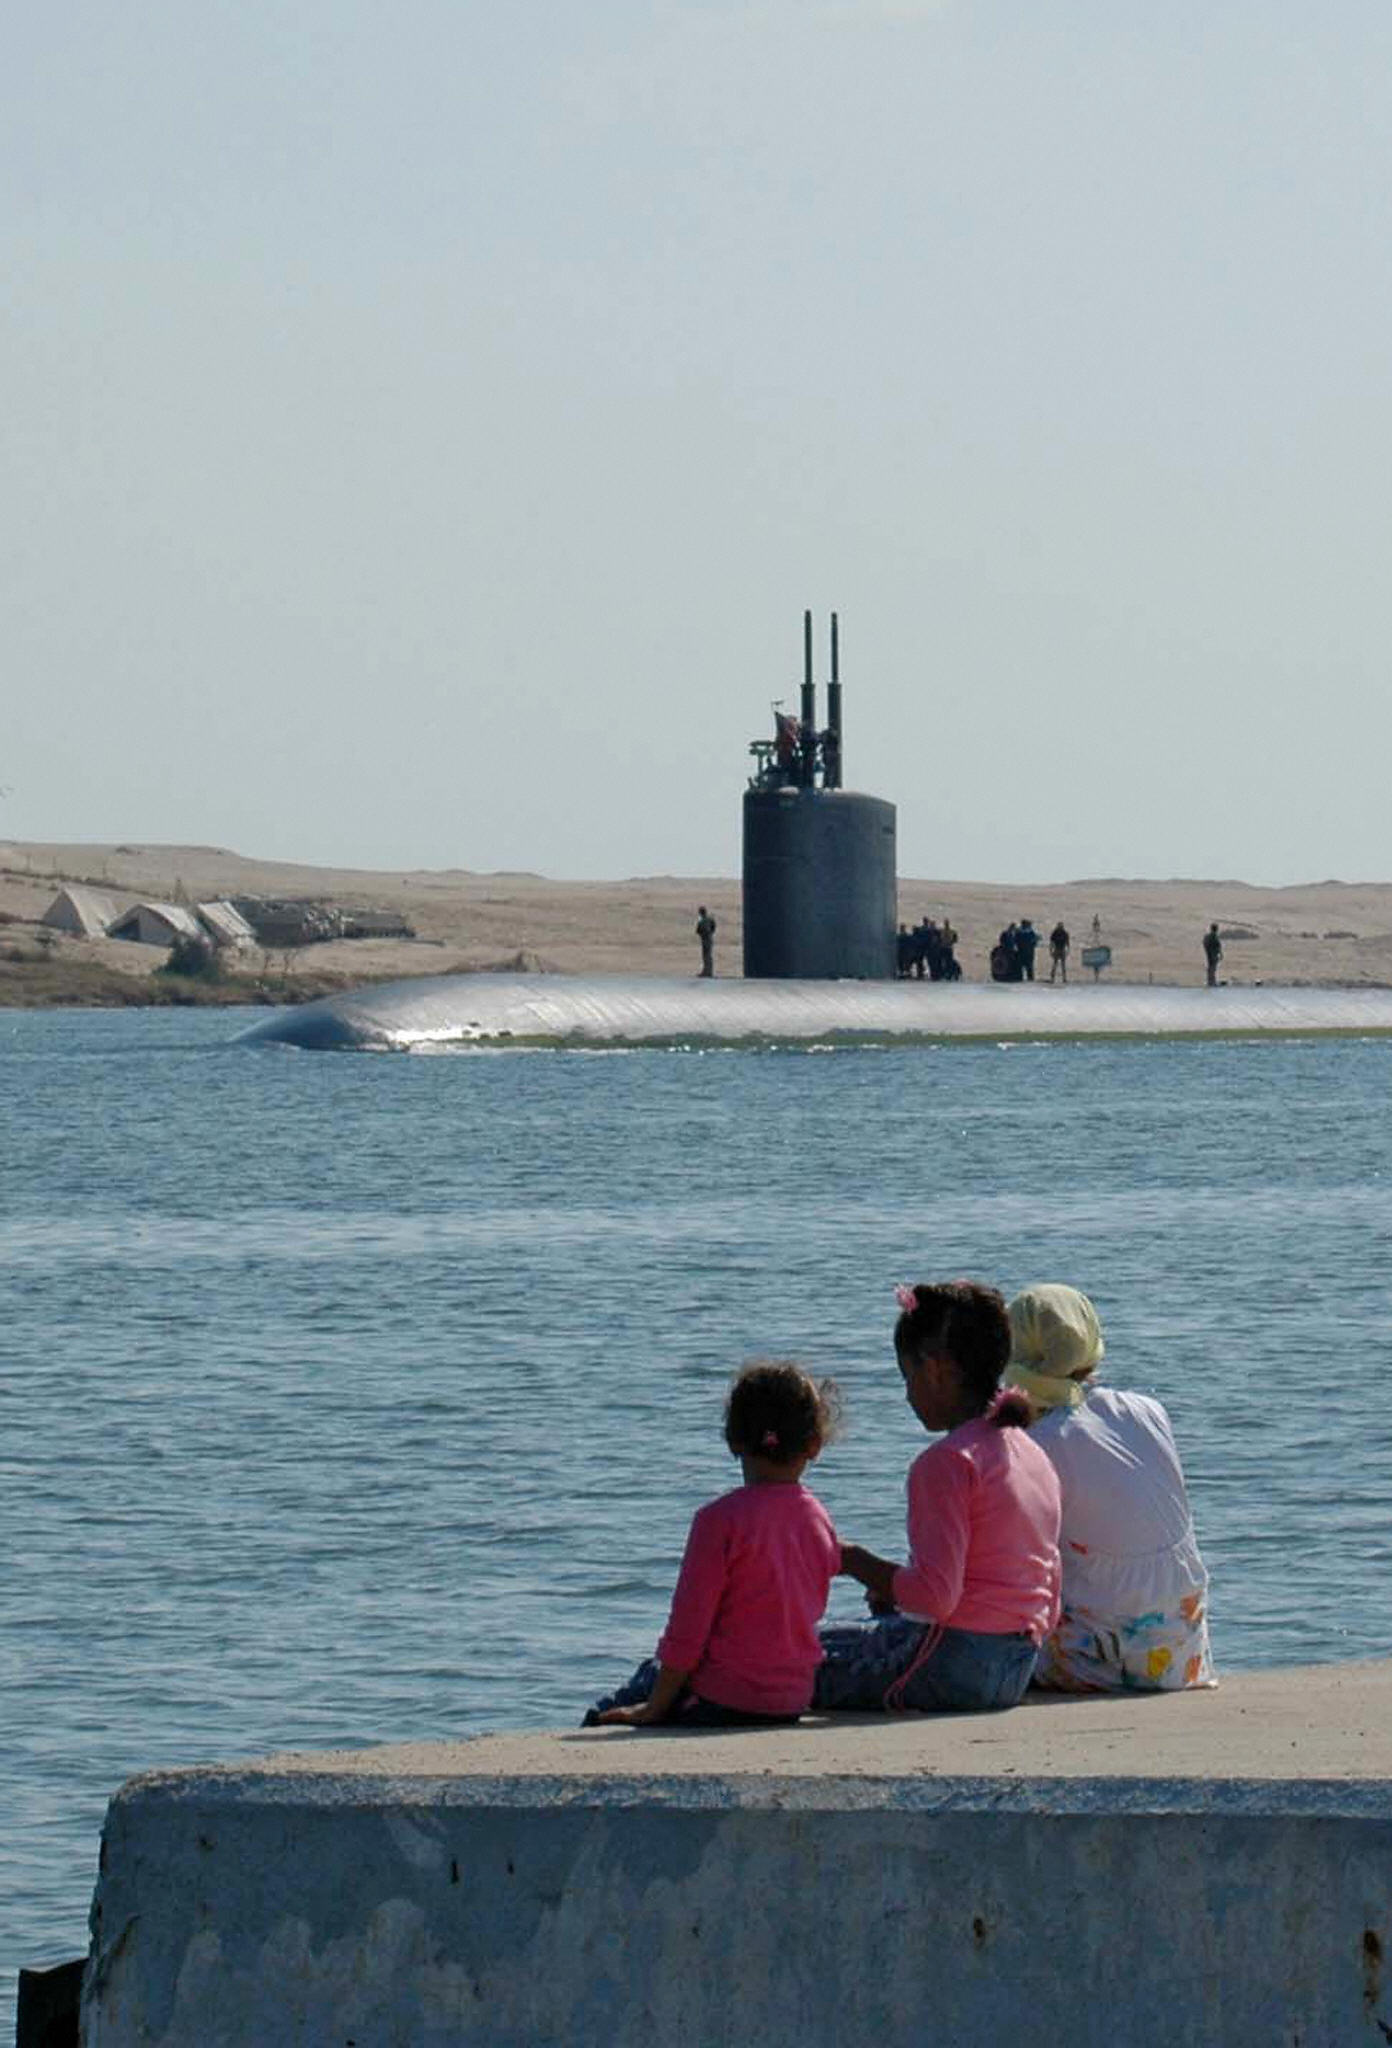 The attack submarine USS Alexandria passes through the Suez Canal by the Egyptian city of Ismailia, 100 kilometers northeast of Cairo (Getty Images)